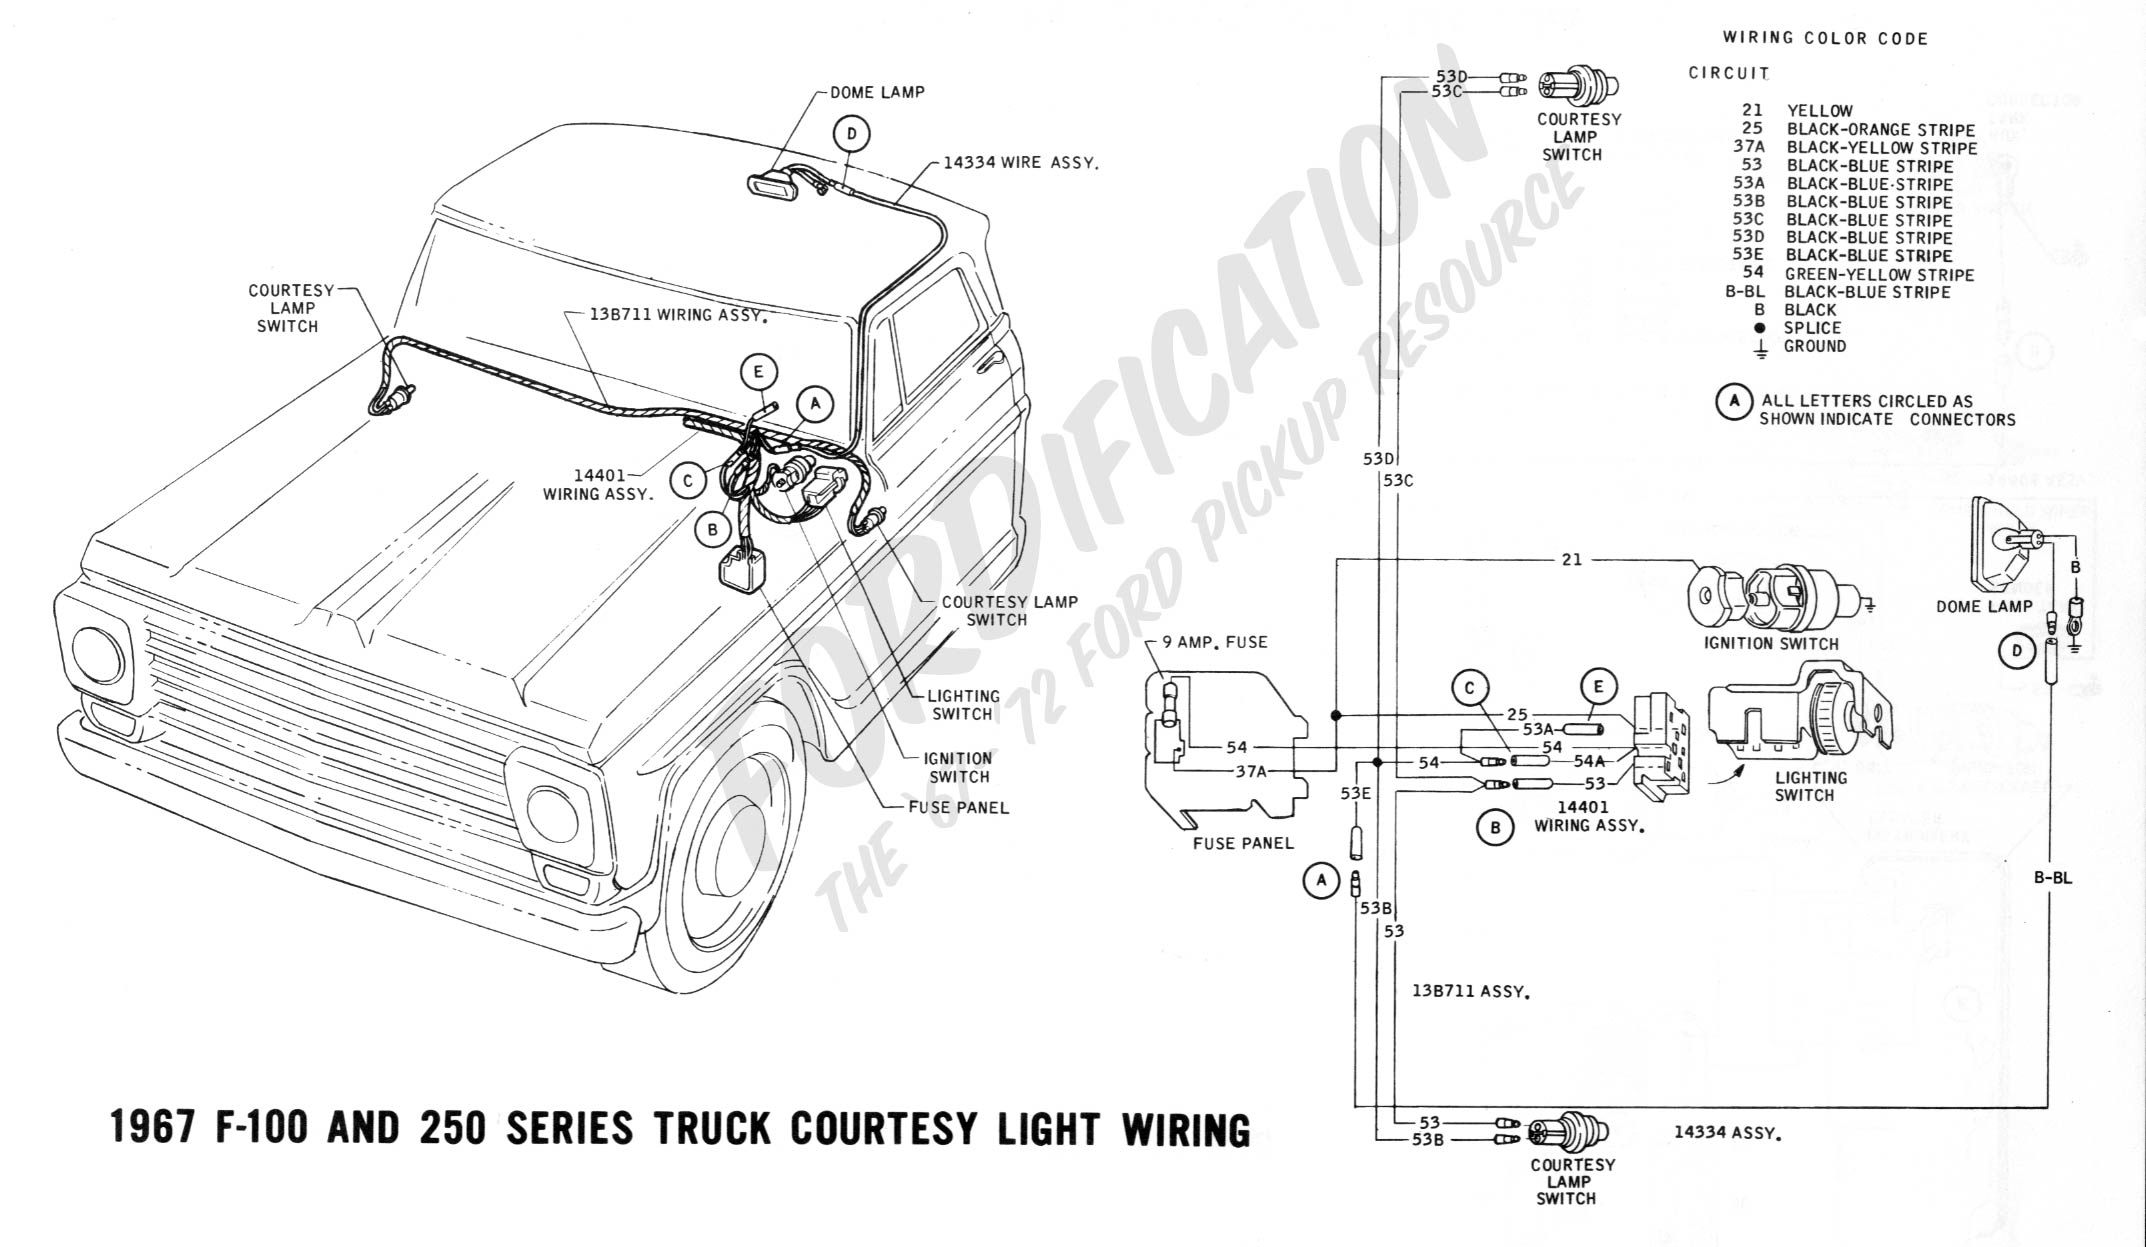 wiring 1967courtesylight wiring in ignition switch in 1966 f100 ford truck enthusiasts forums Ford E 350 Wiring Diagrams at mr168.co